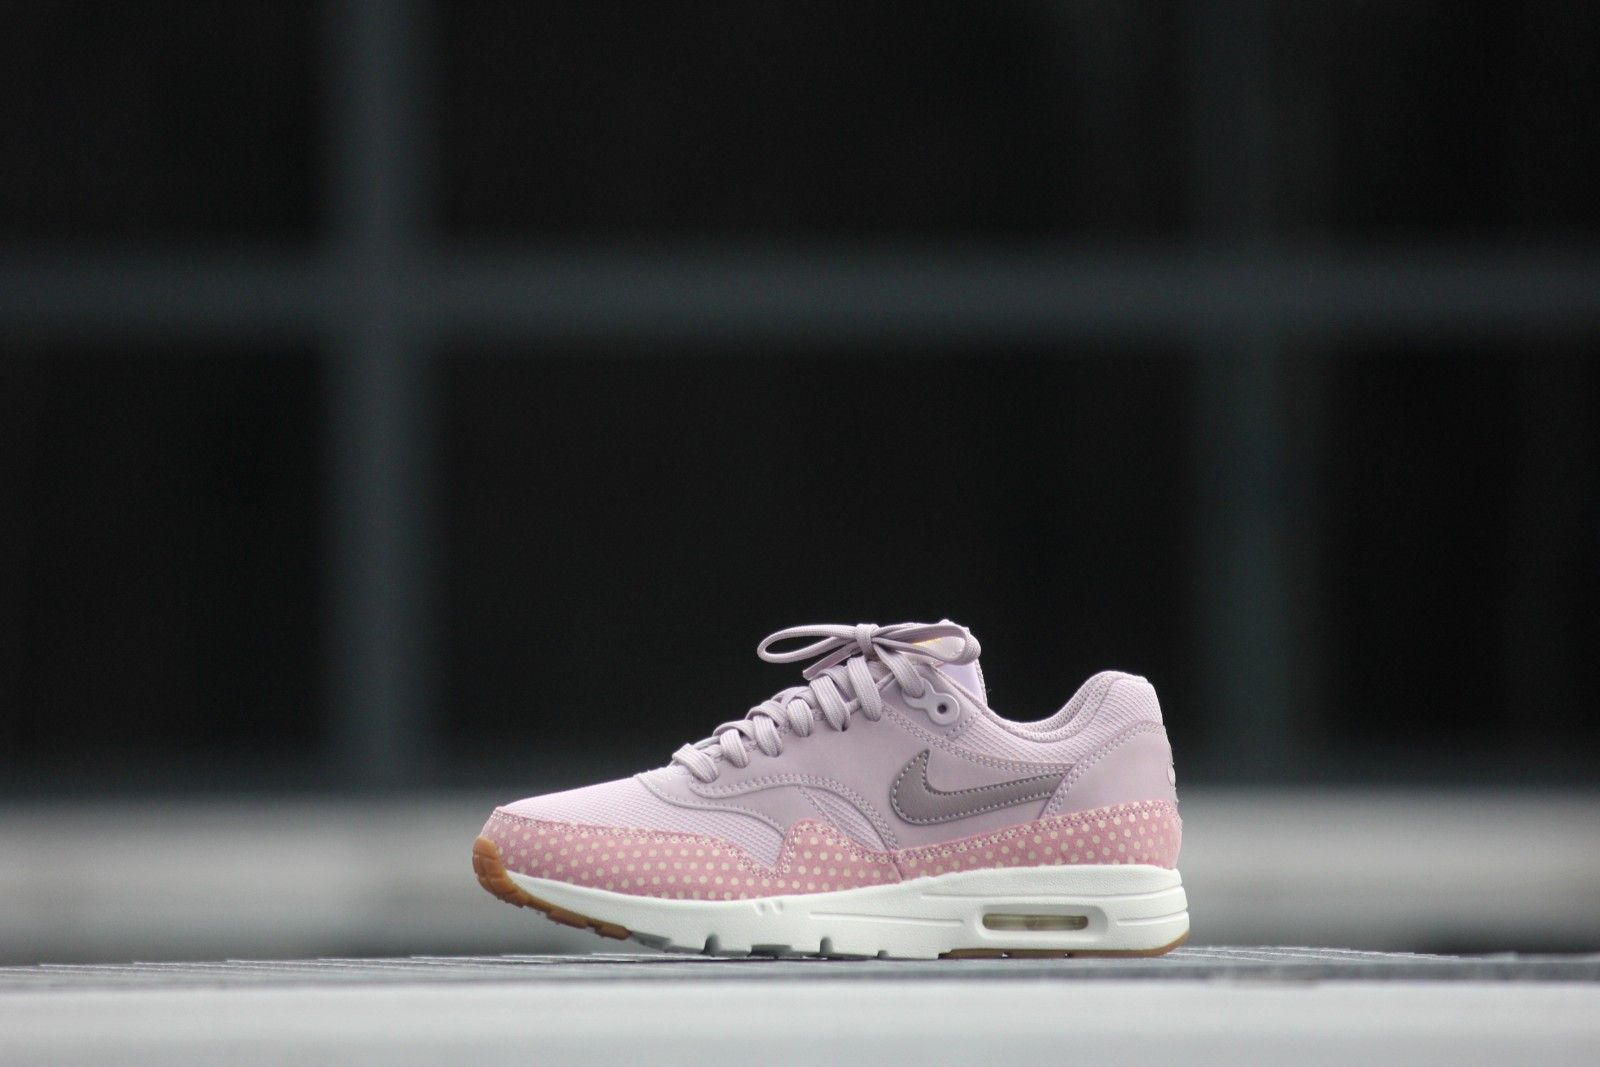 newest collection f2414 0b7bd Nike Wmns Air Max 1 Ultra Essentials Plam Fog Purple-Smoke - 704993-501